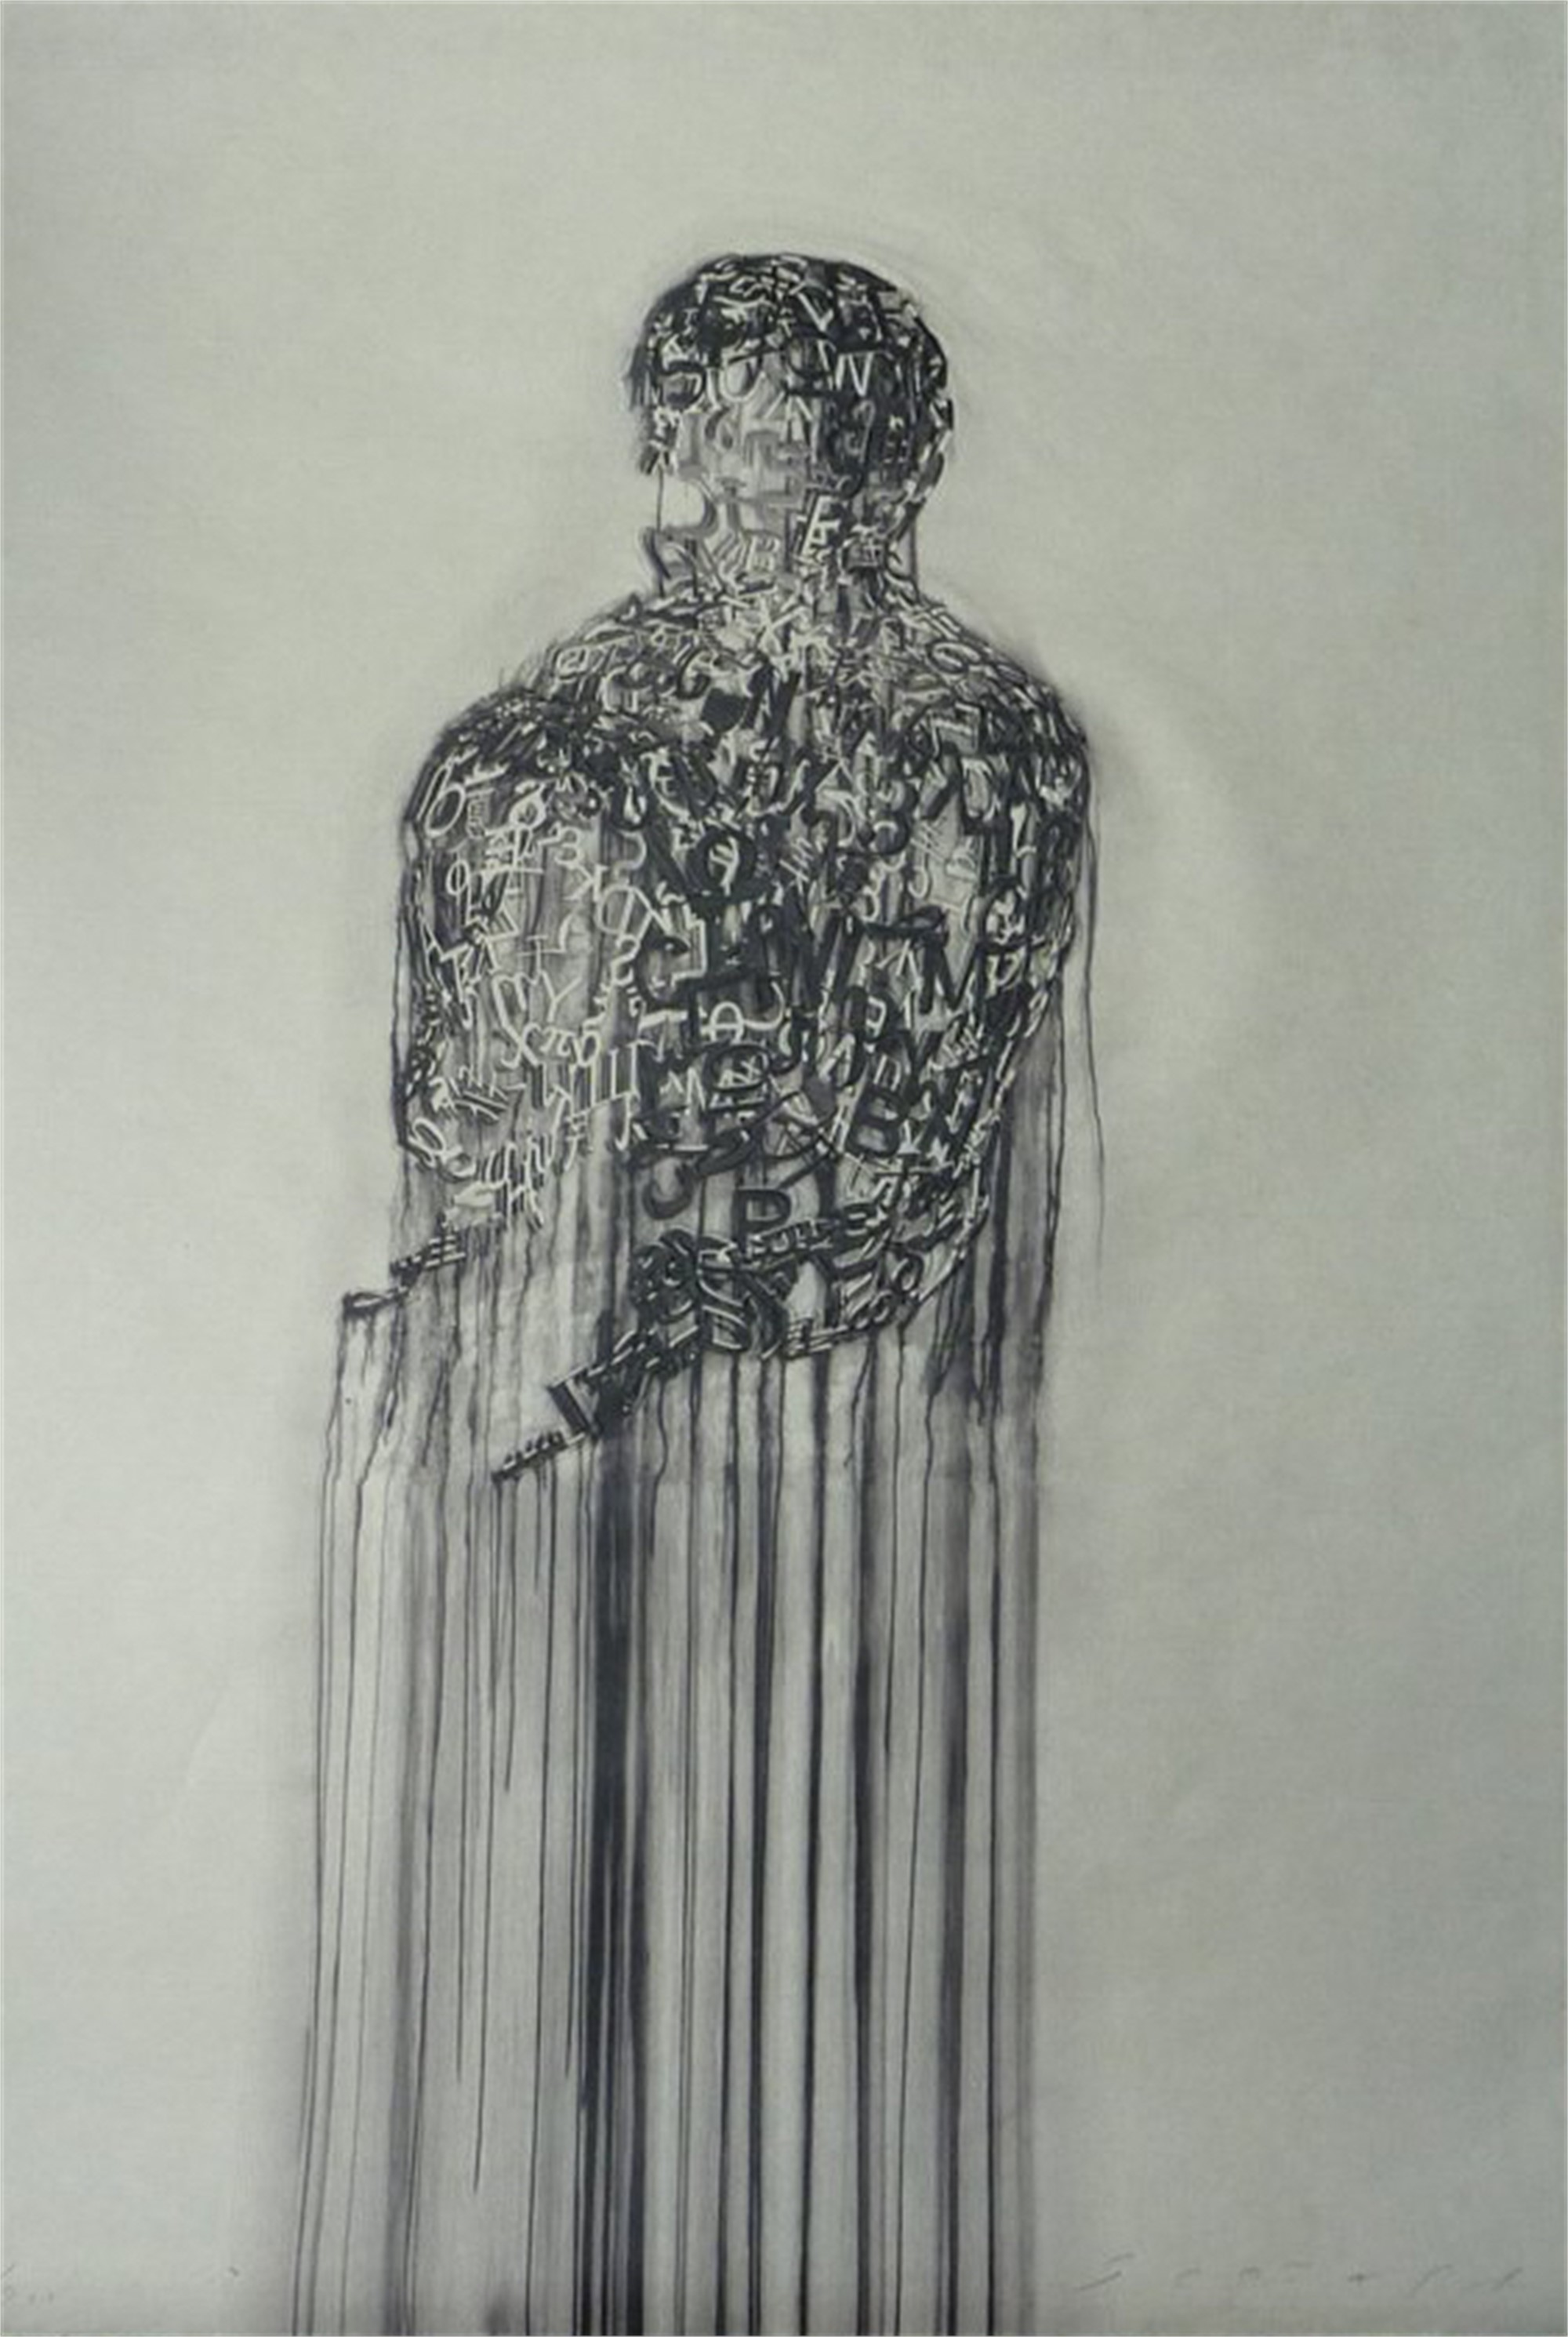 Untitled (Nomade) by Jaume Plensa